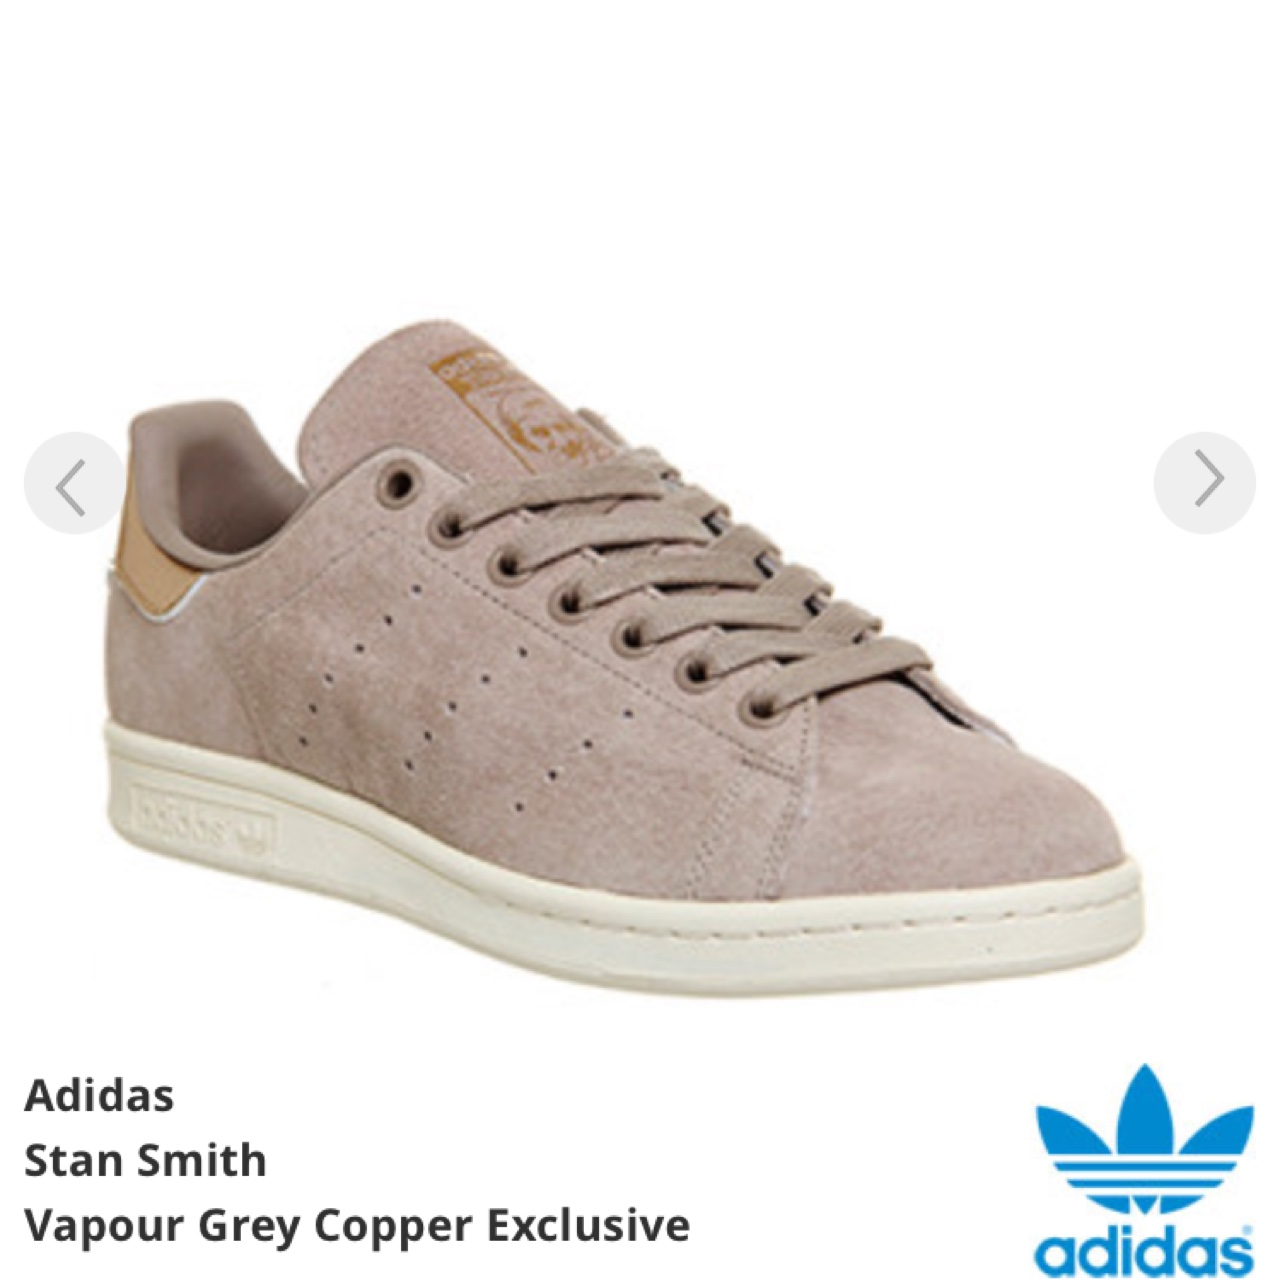 reputable site a64bd 3bb0d Adidas Stan Smith grey suede trainers UK 6 -... - Depop